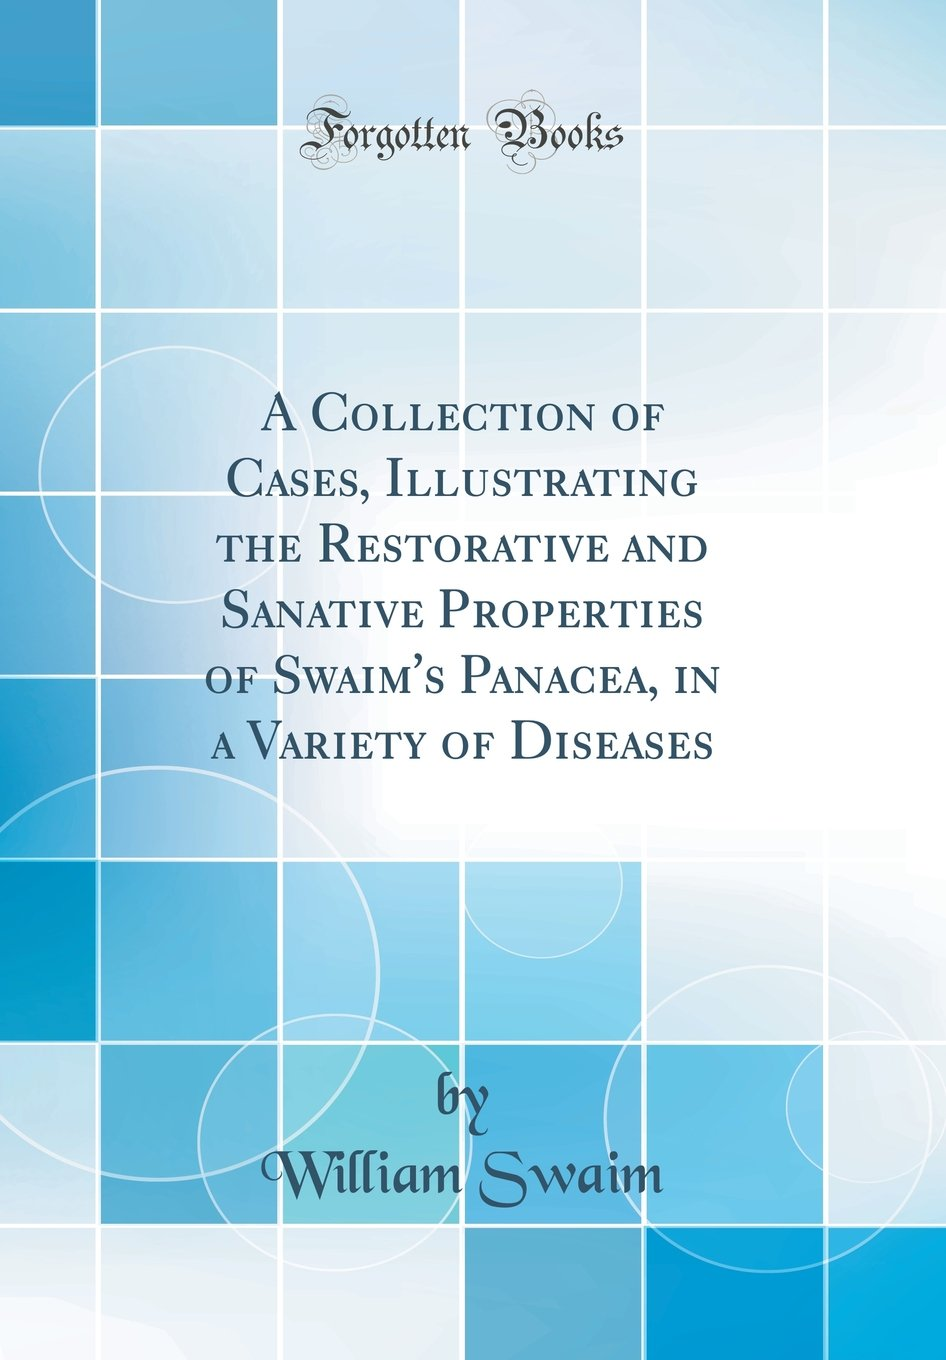 A Collection of Cases, Illustrating the Restorative and Sanative Properties of Swaim's Panacea, in a Variety of Diseases (Classic Reprint) ebook